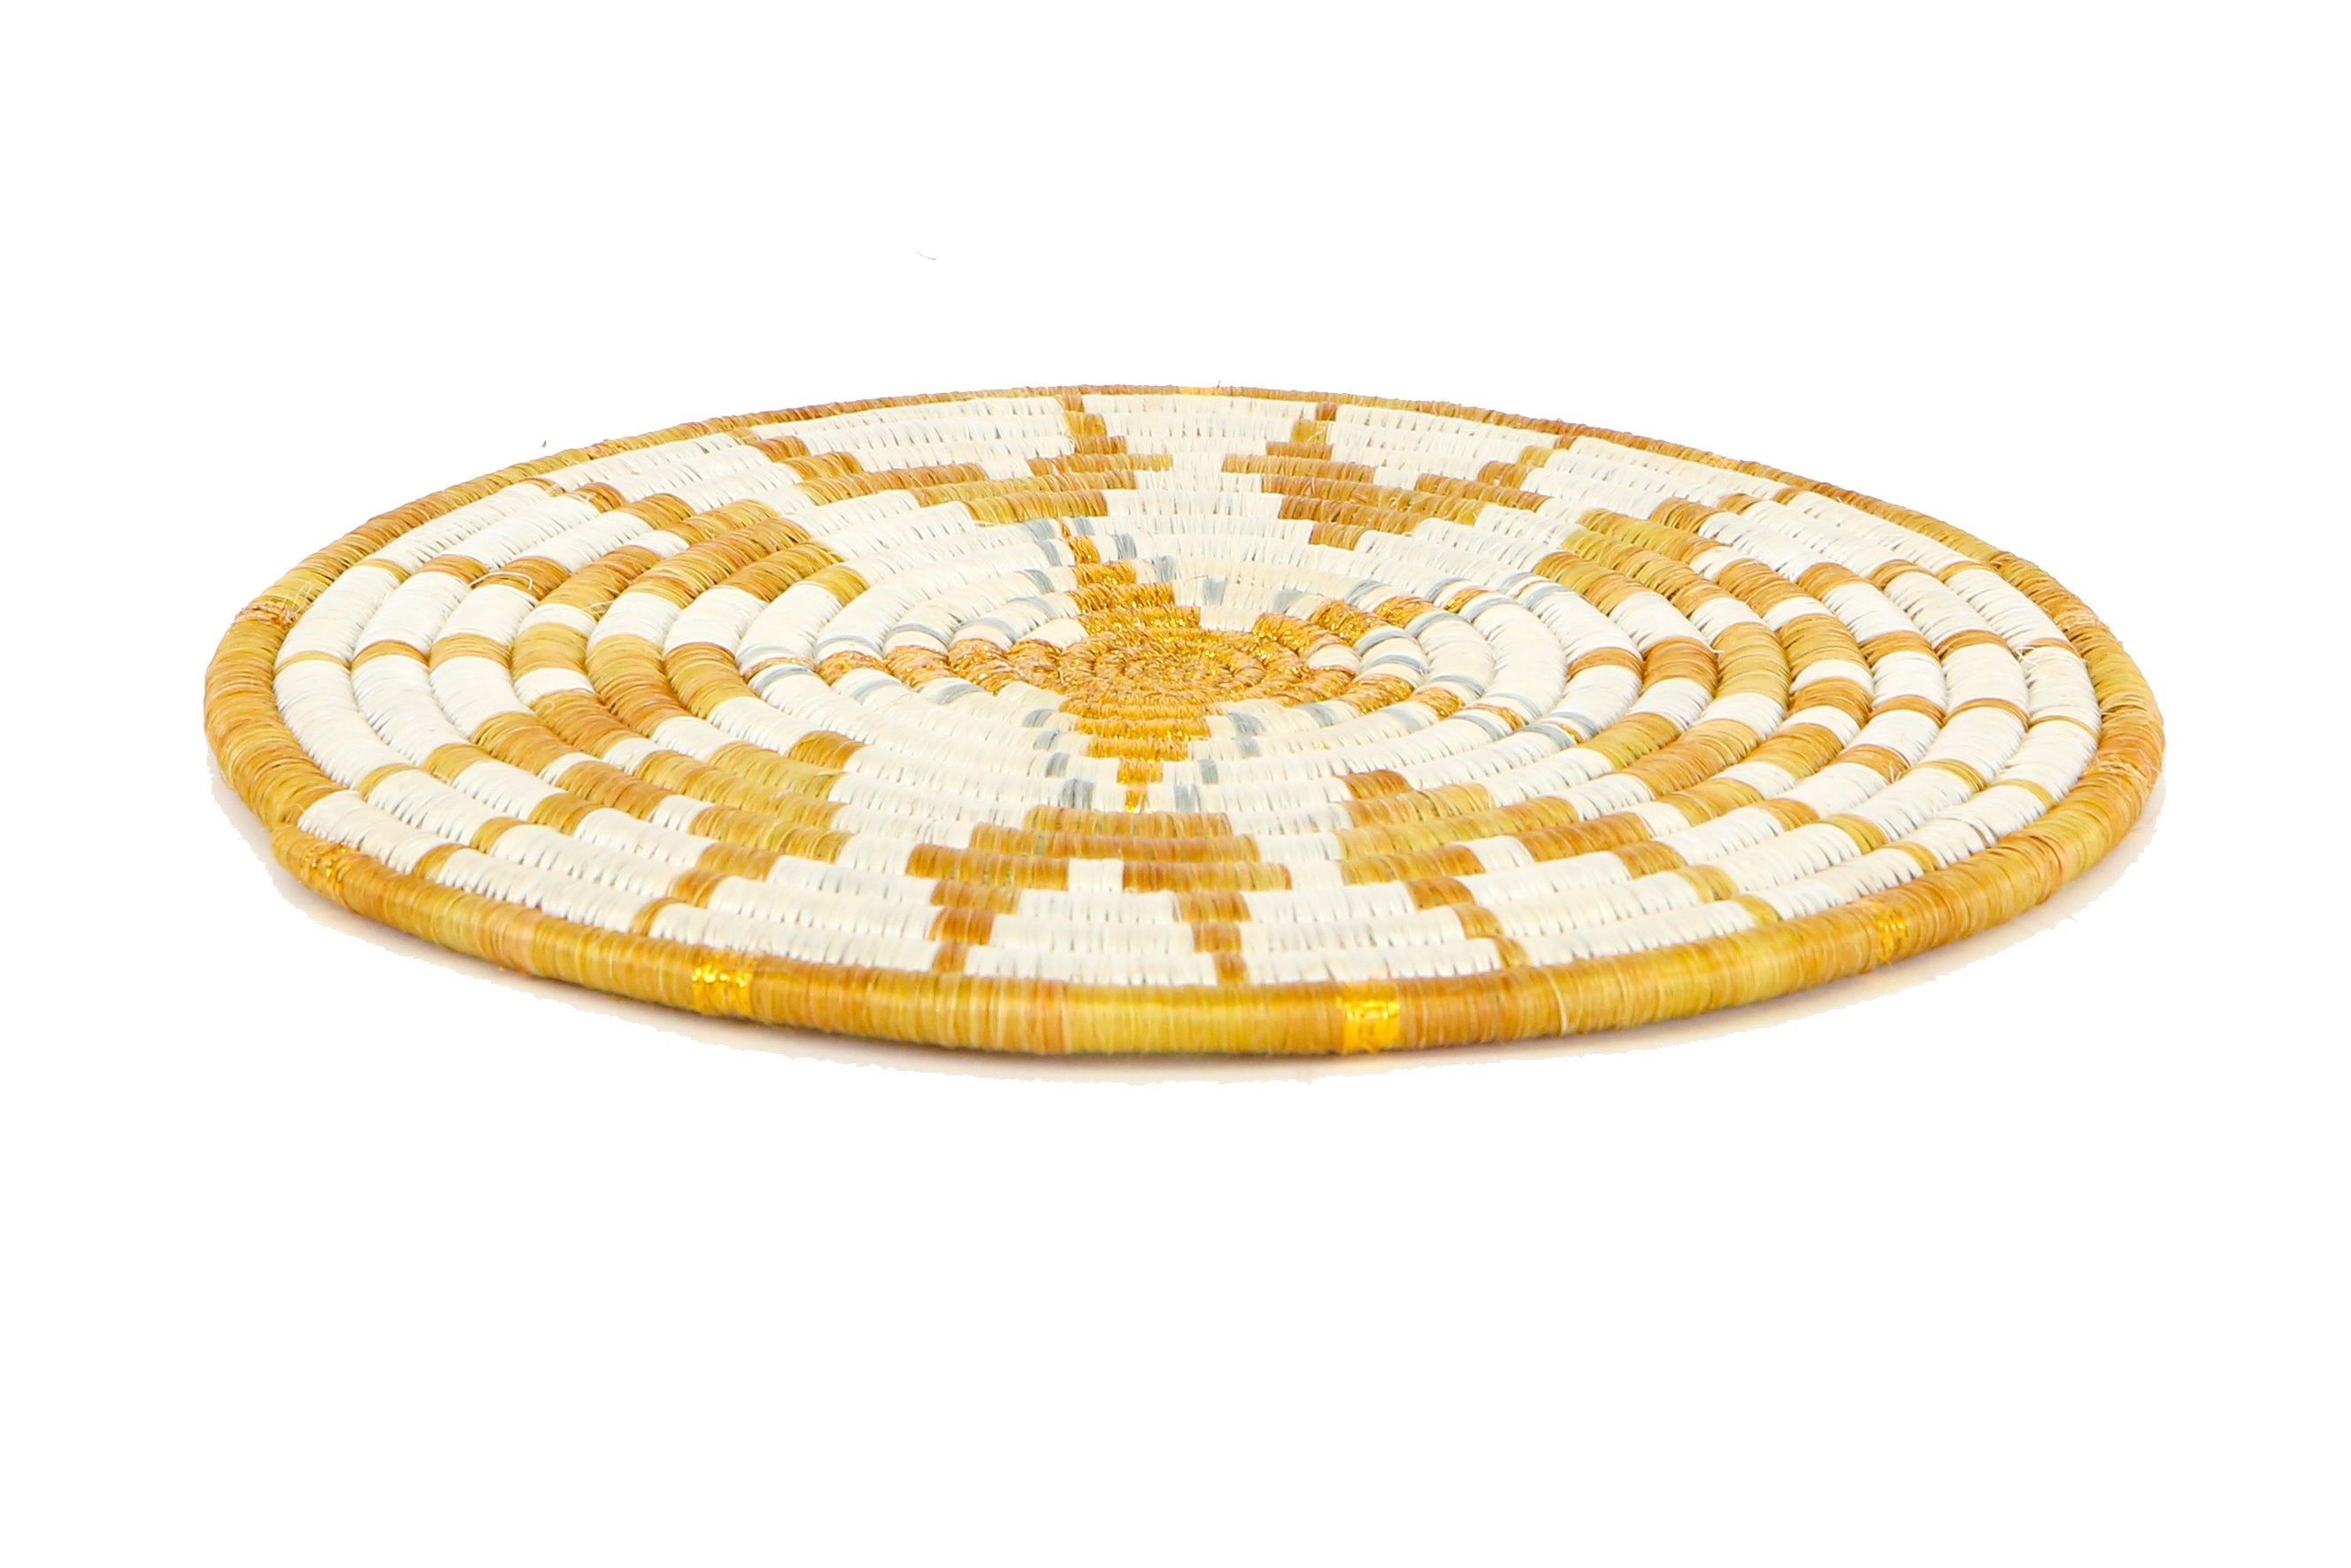 "10"" Zahabu Metallic Gold Hot Pad (M) - KAZI - Artisan made high quality home decor and wall art"